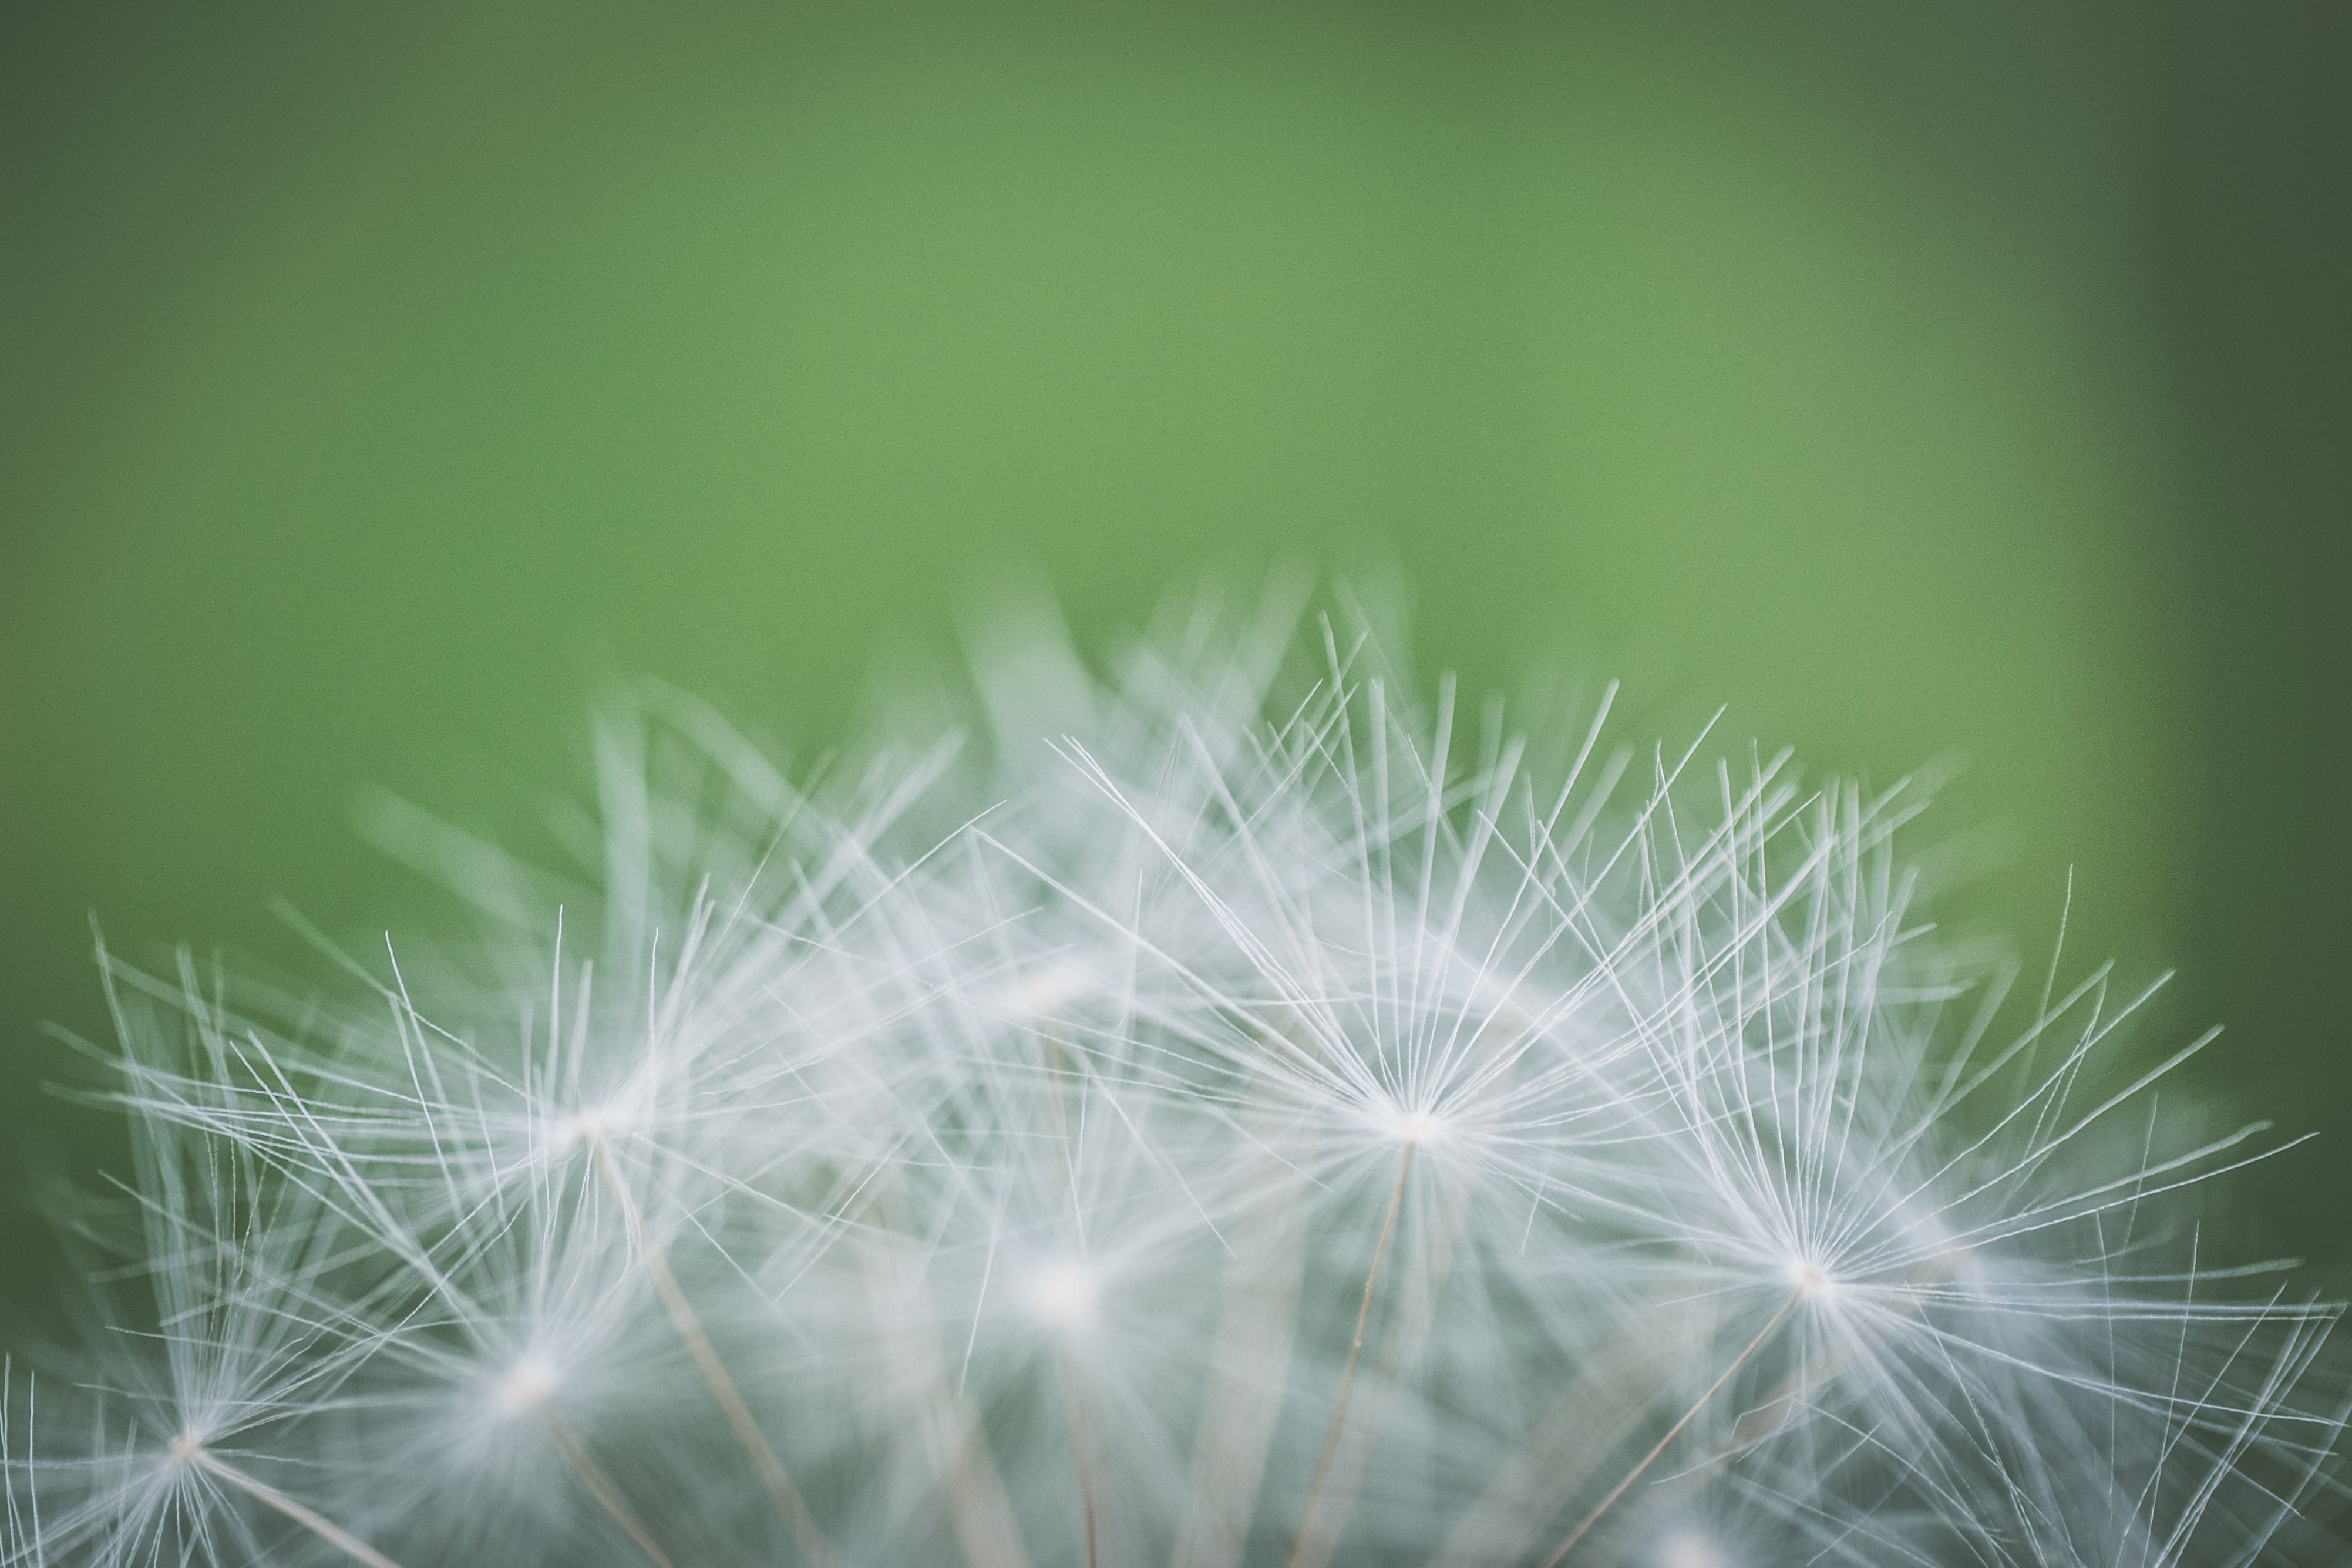 Focus Photography of Withered Dandelion